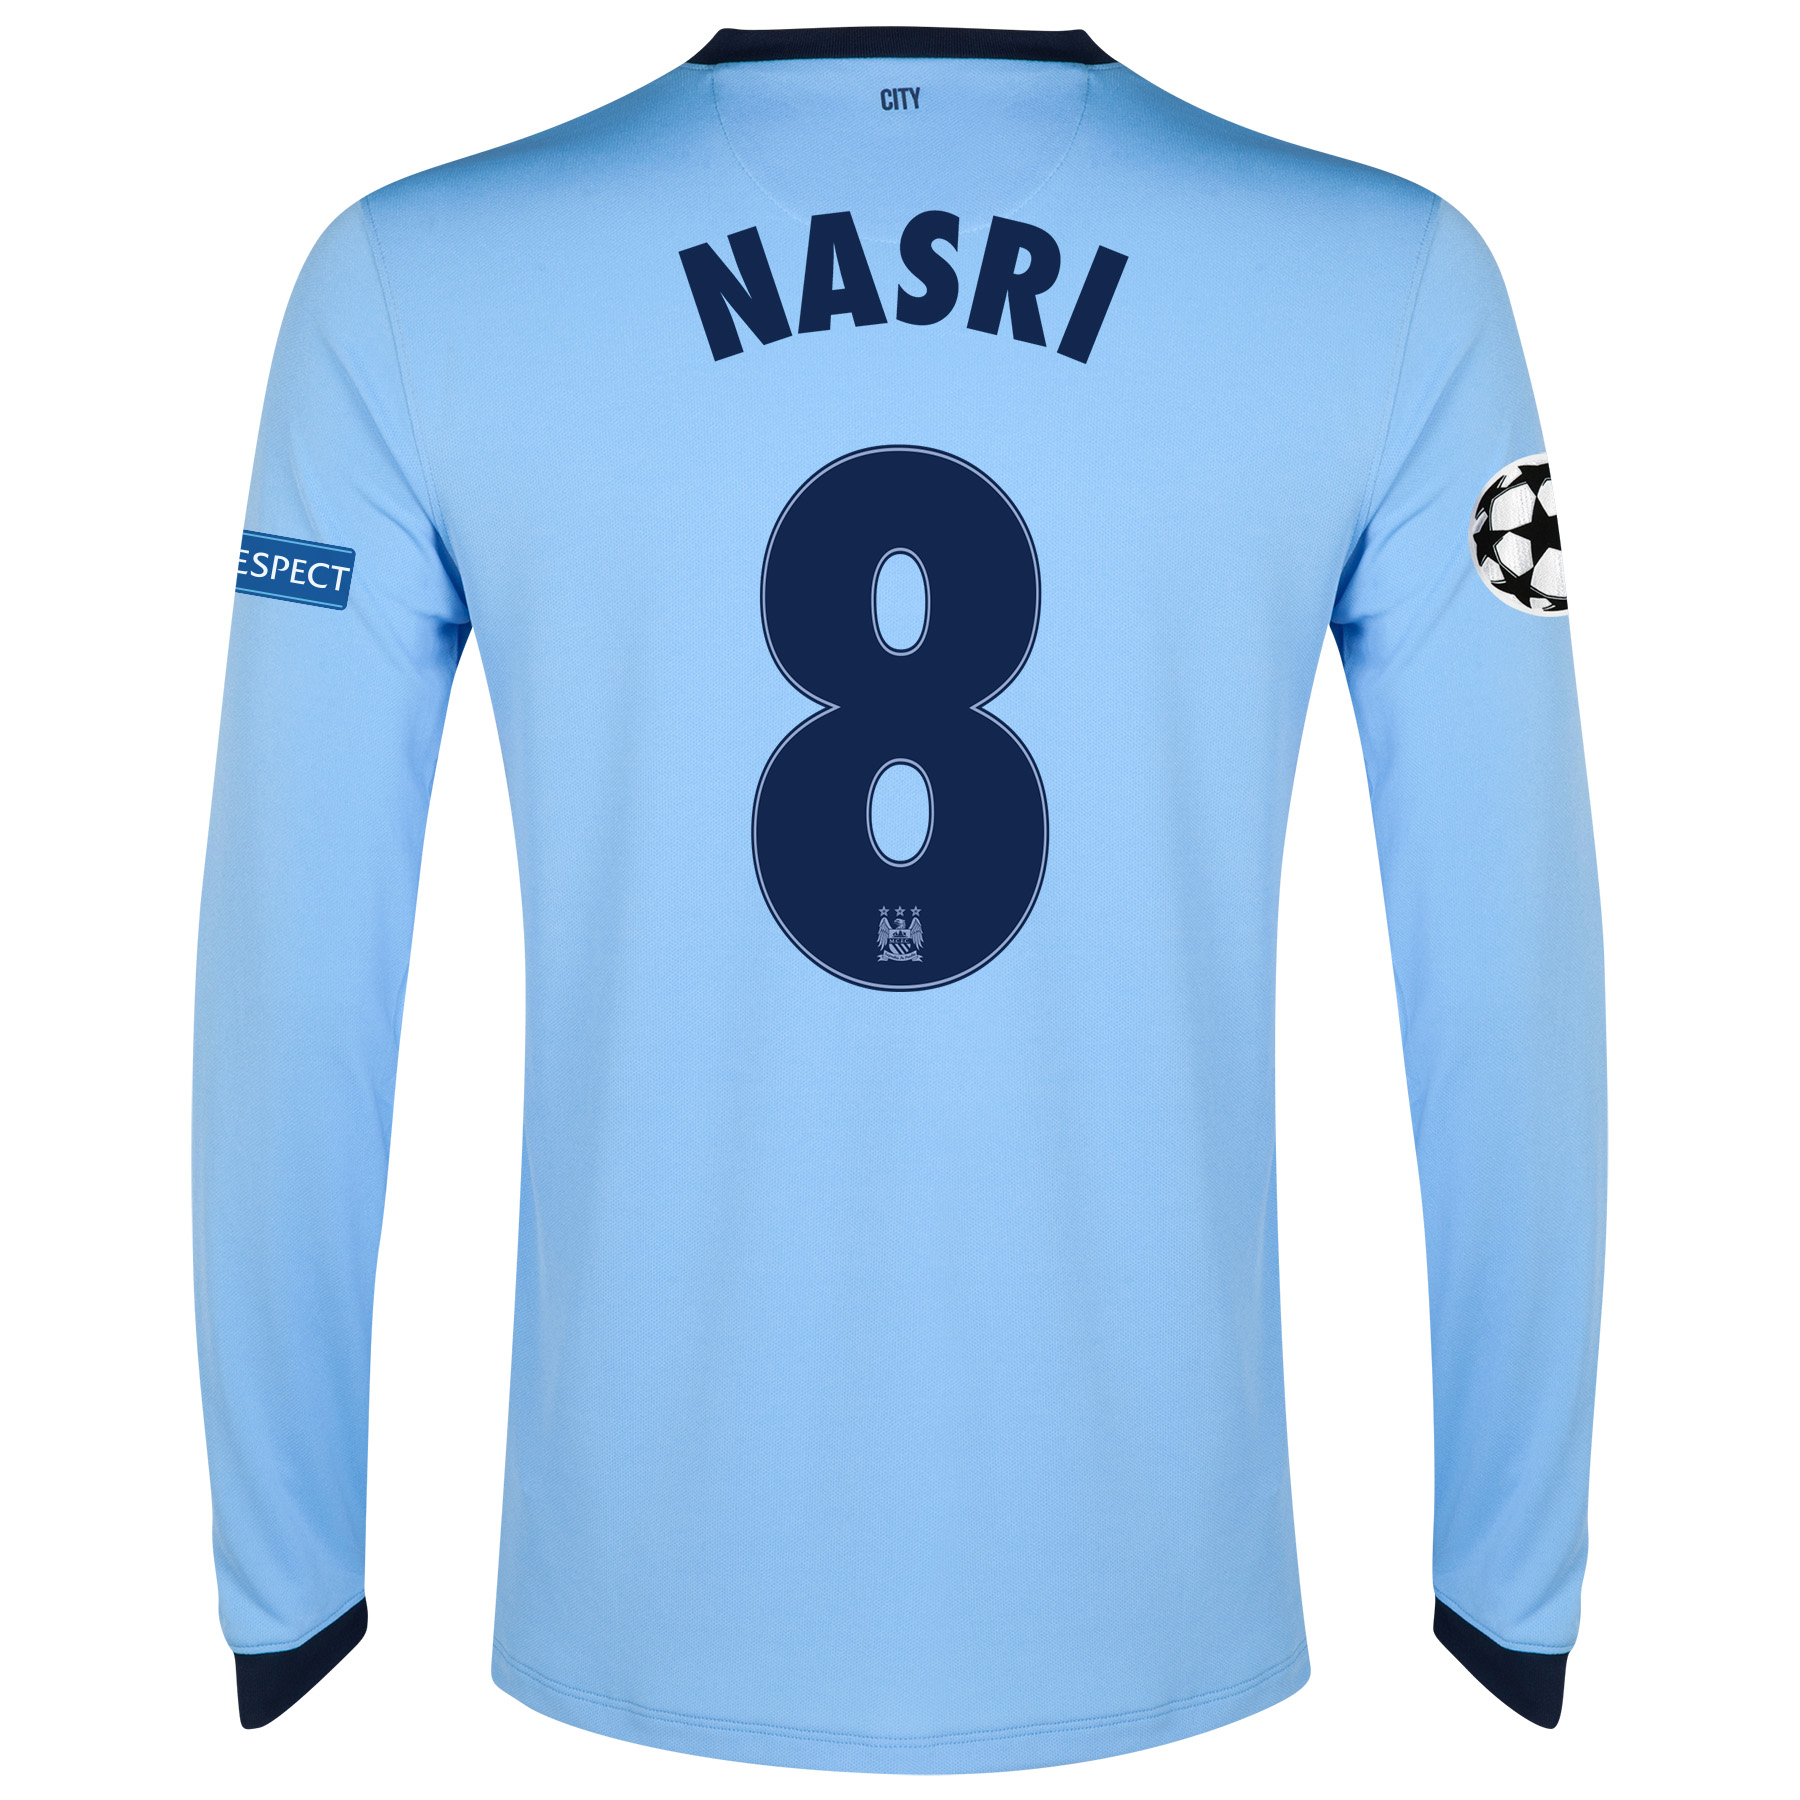 Manchester City UEFA Champions League Home Shirt 2014/15 - Long Sleeve Sky Blue with Nasri 8 printing